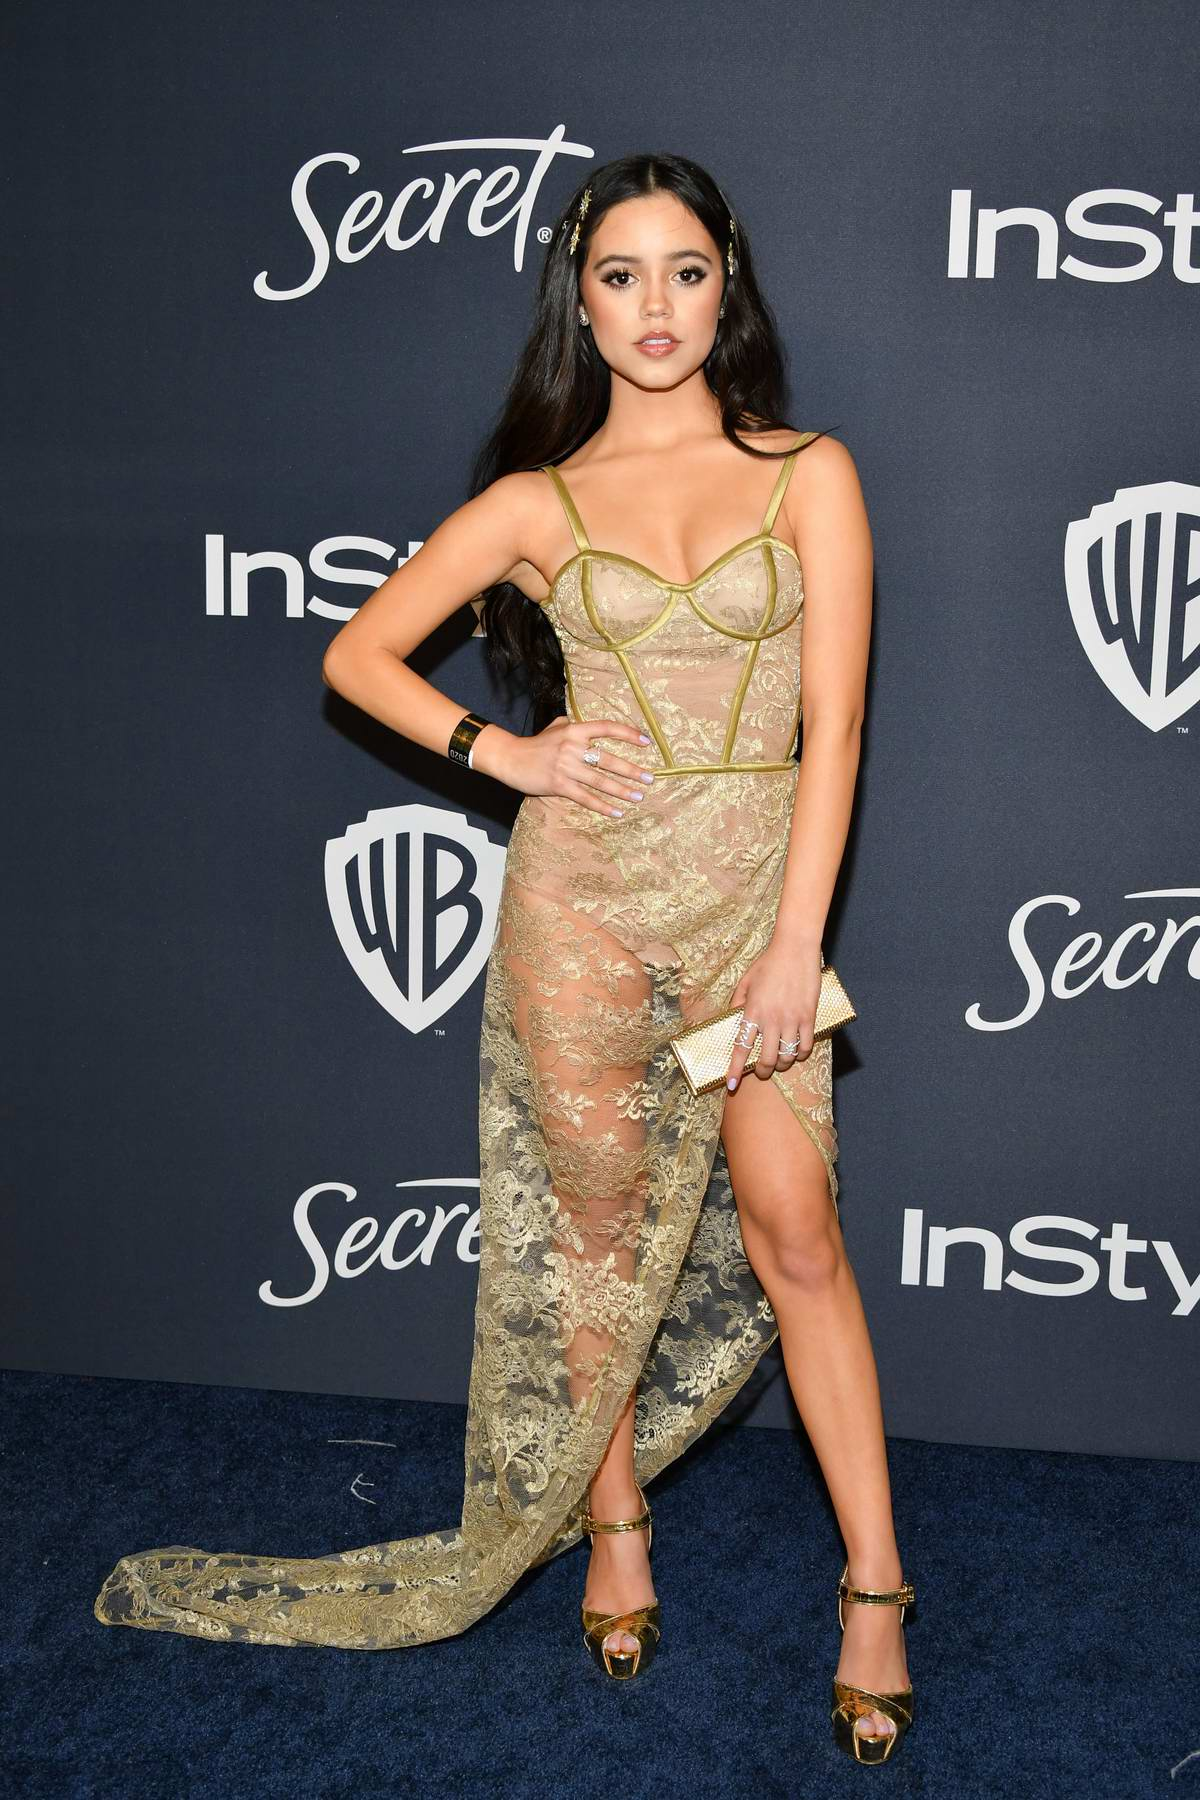 Jenna Ortega attends the 21st annual Warner Bros and InStyle Golden Globe After-Party in Beverly Hills, California